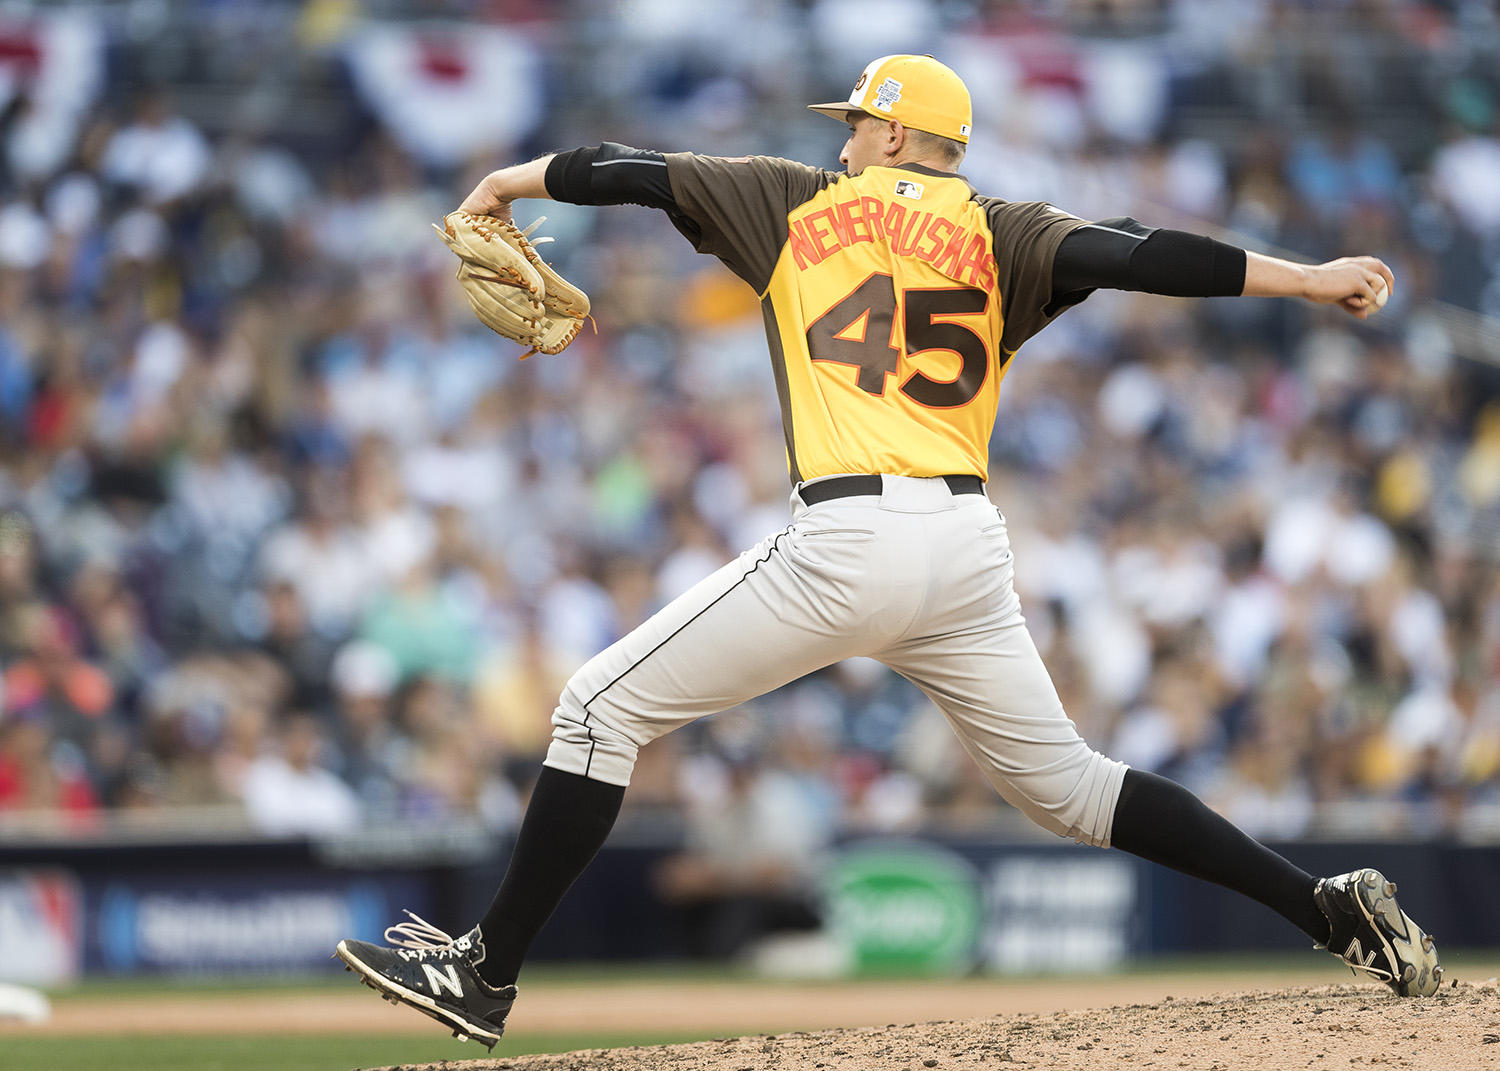 Pittsburgh Pirates prospect Dovydas Neverauskas pitches in the 2016 MLB All-Star Futures Game for Team World at Petco Park on July 10, 2016. He represented his native country by sporting a Lithuania flag patch on his sleeve. (Jean Fruth / National Baseball Hall of Fame and Museum)